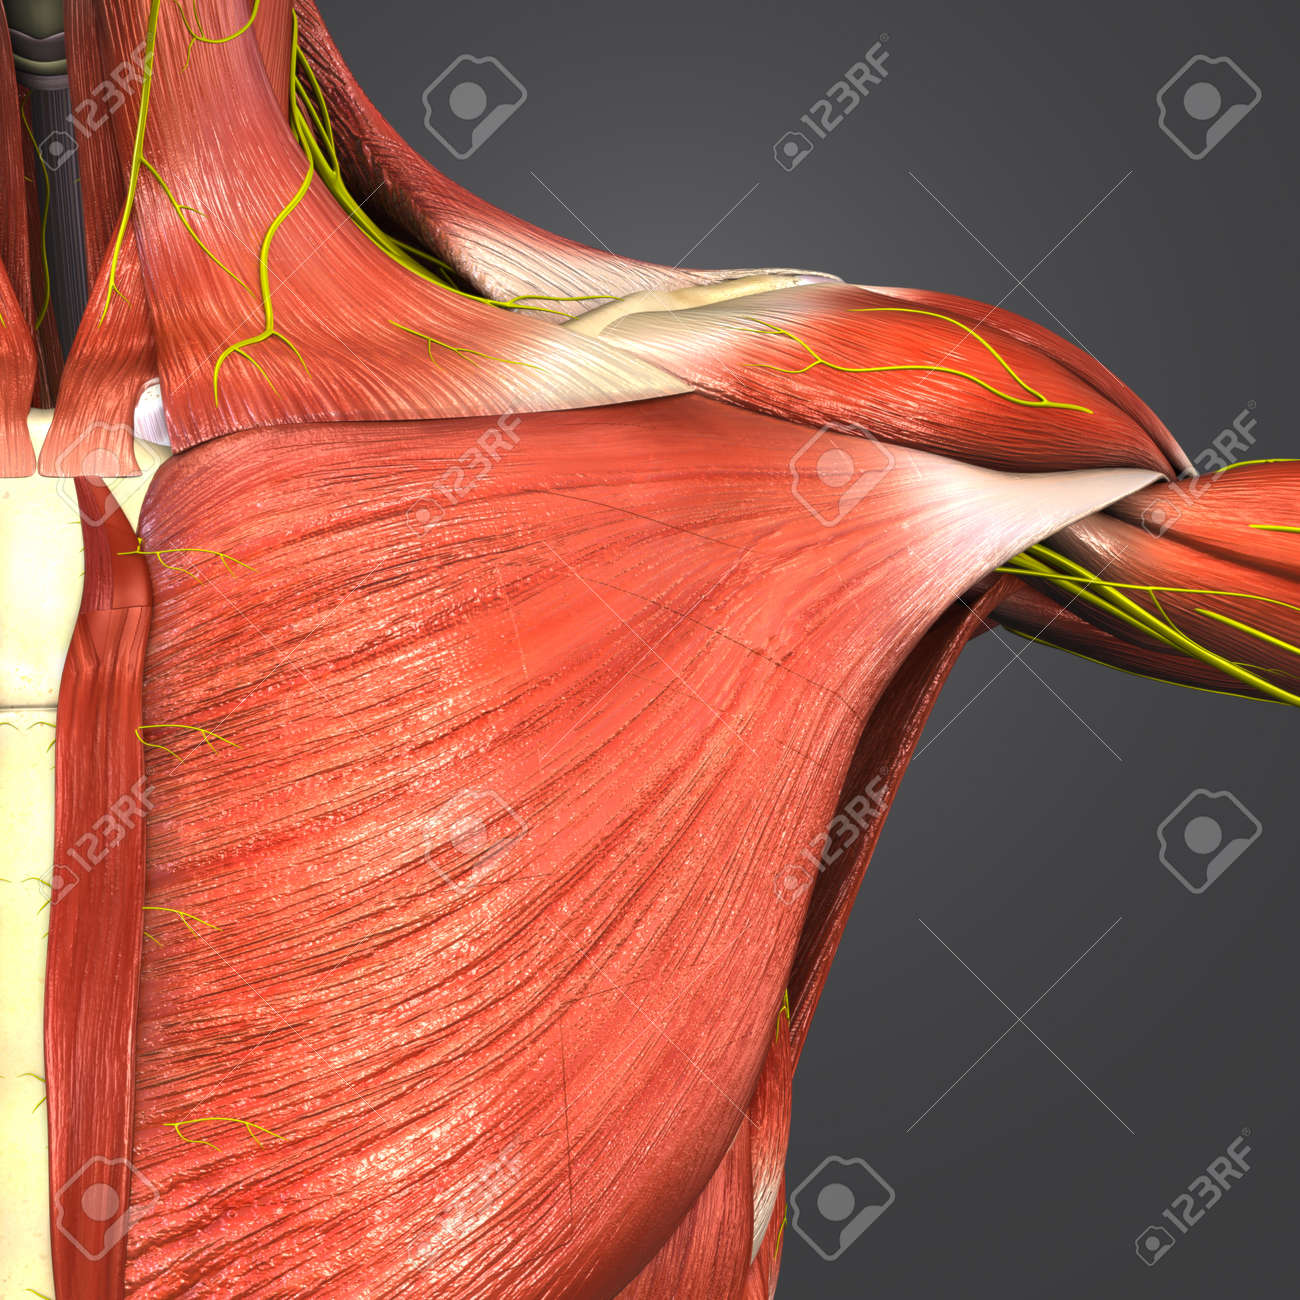 Shoulder Muscles And Skeleton With Nerves Stock Photo, Picture And ...